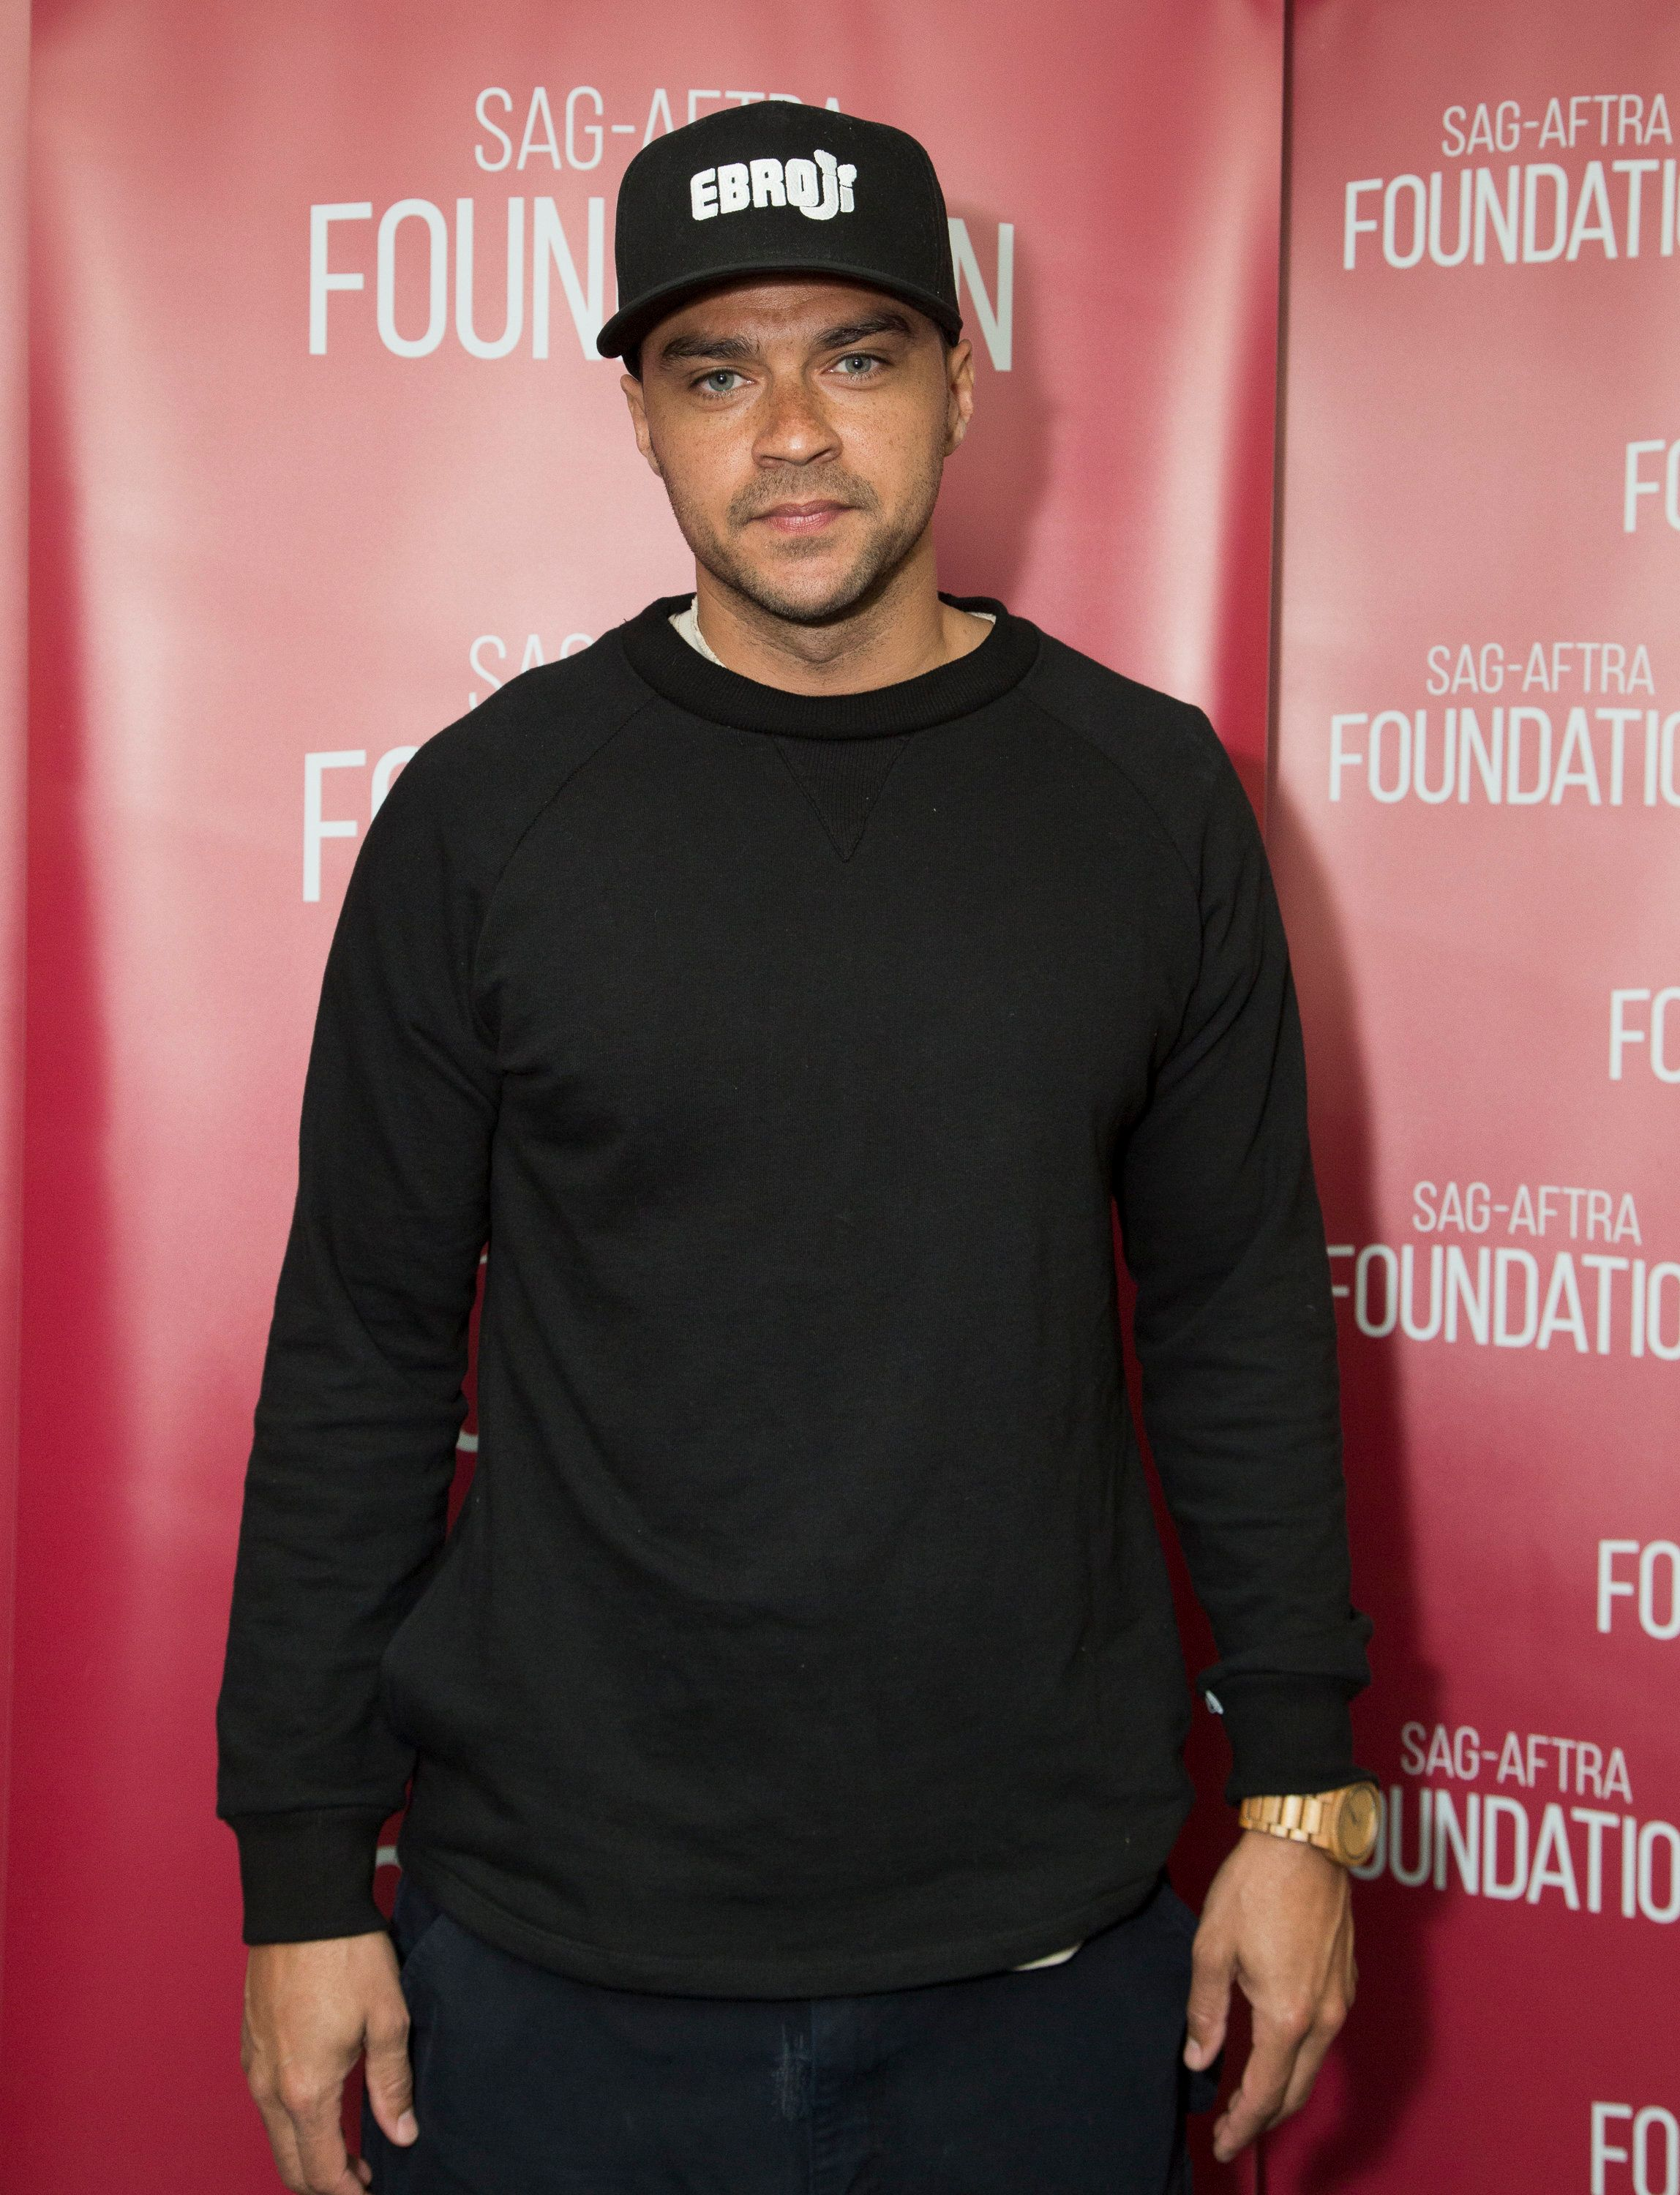 LOS ANGELES, CA - MARCH 13:  Actor Jesse Williams attends SAG-AFTRA Foundation's Conversations with 'Grey's Anatomy' at SAG-AFTRA Foundation Screening Room on March 13, 2017 in Los Angeles, California.  (Photo by Vincent Sandoval/Getty Images)